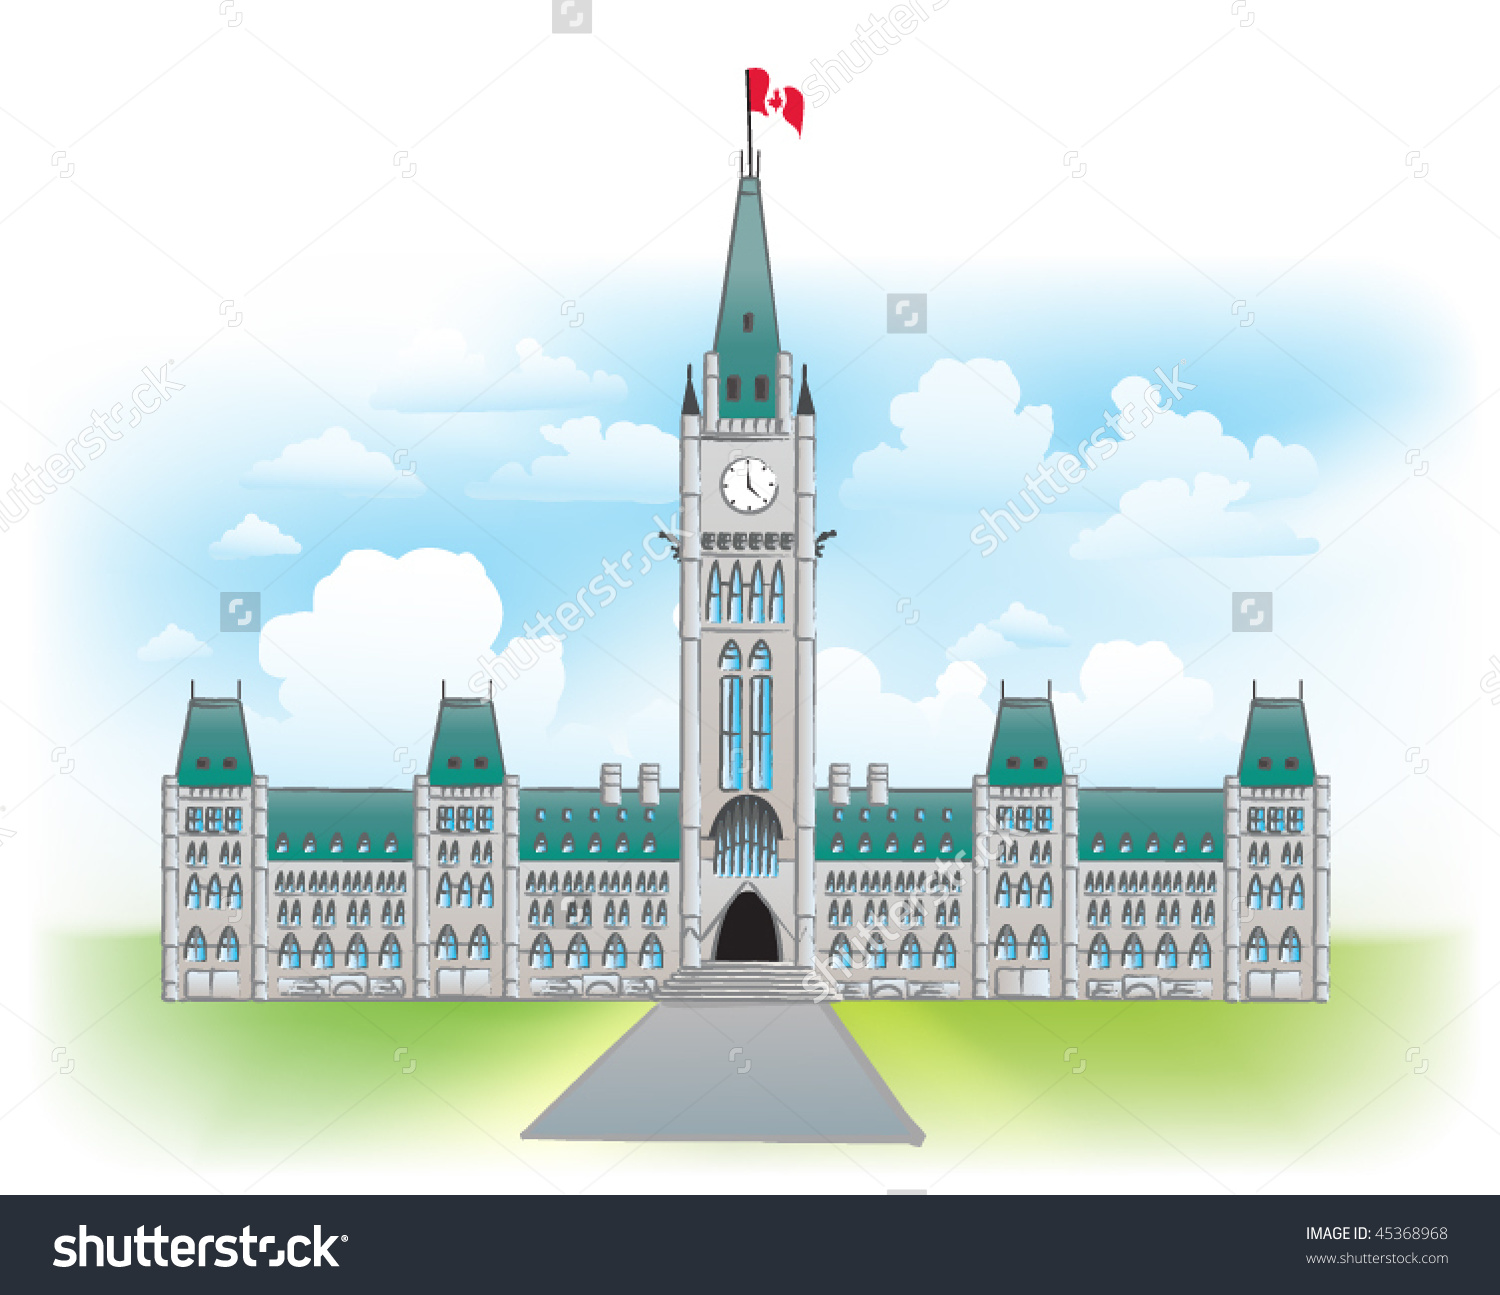 Parliament Buildings Ottawa Clipart.